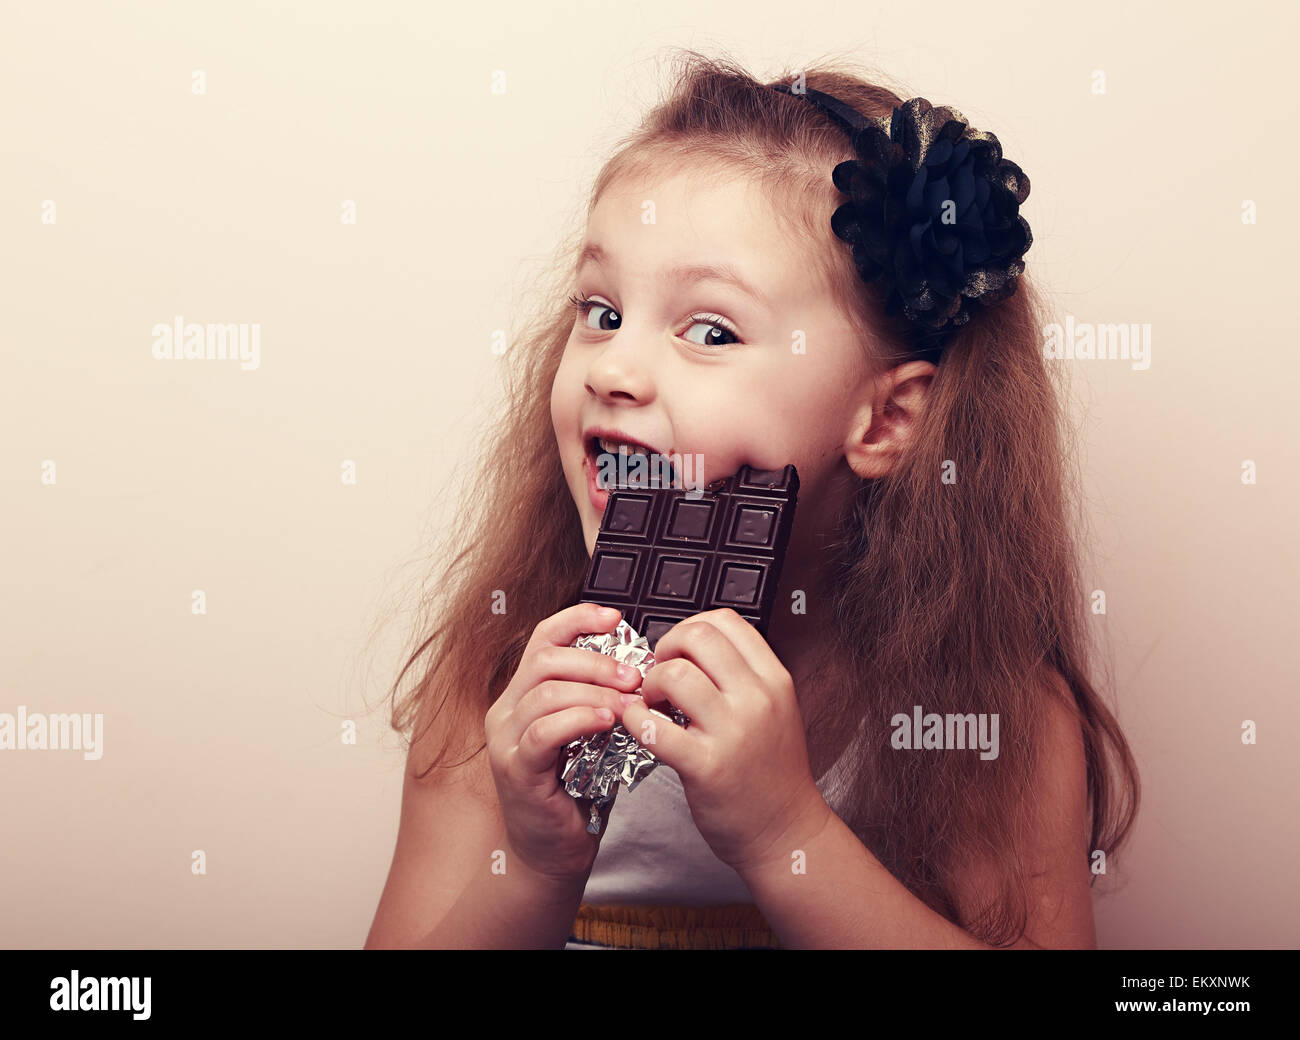 Happy smiling kid girl biting tasty chocolate with empty copy space. Vintage portrait - Stock Image